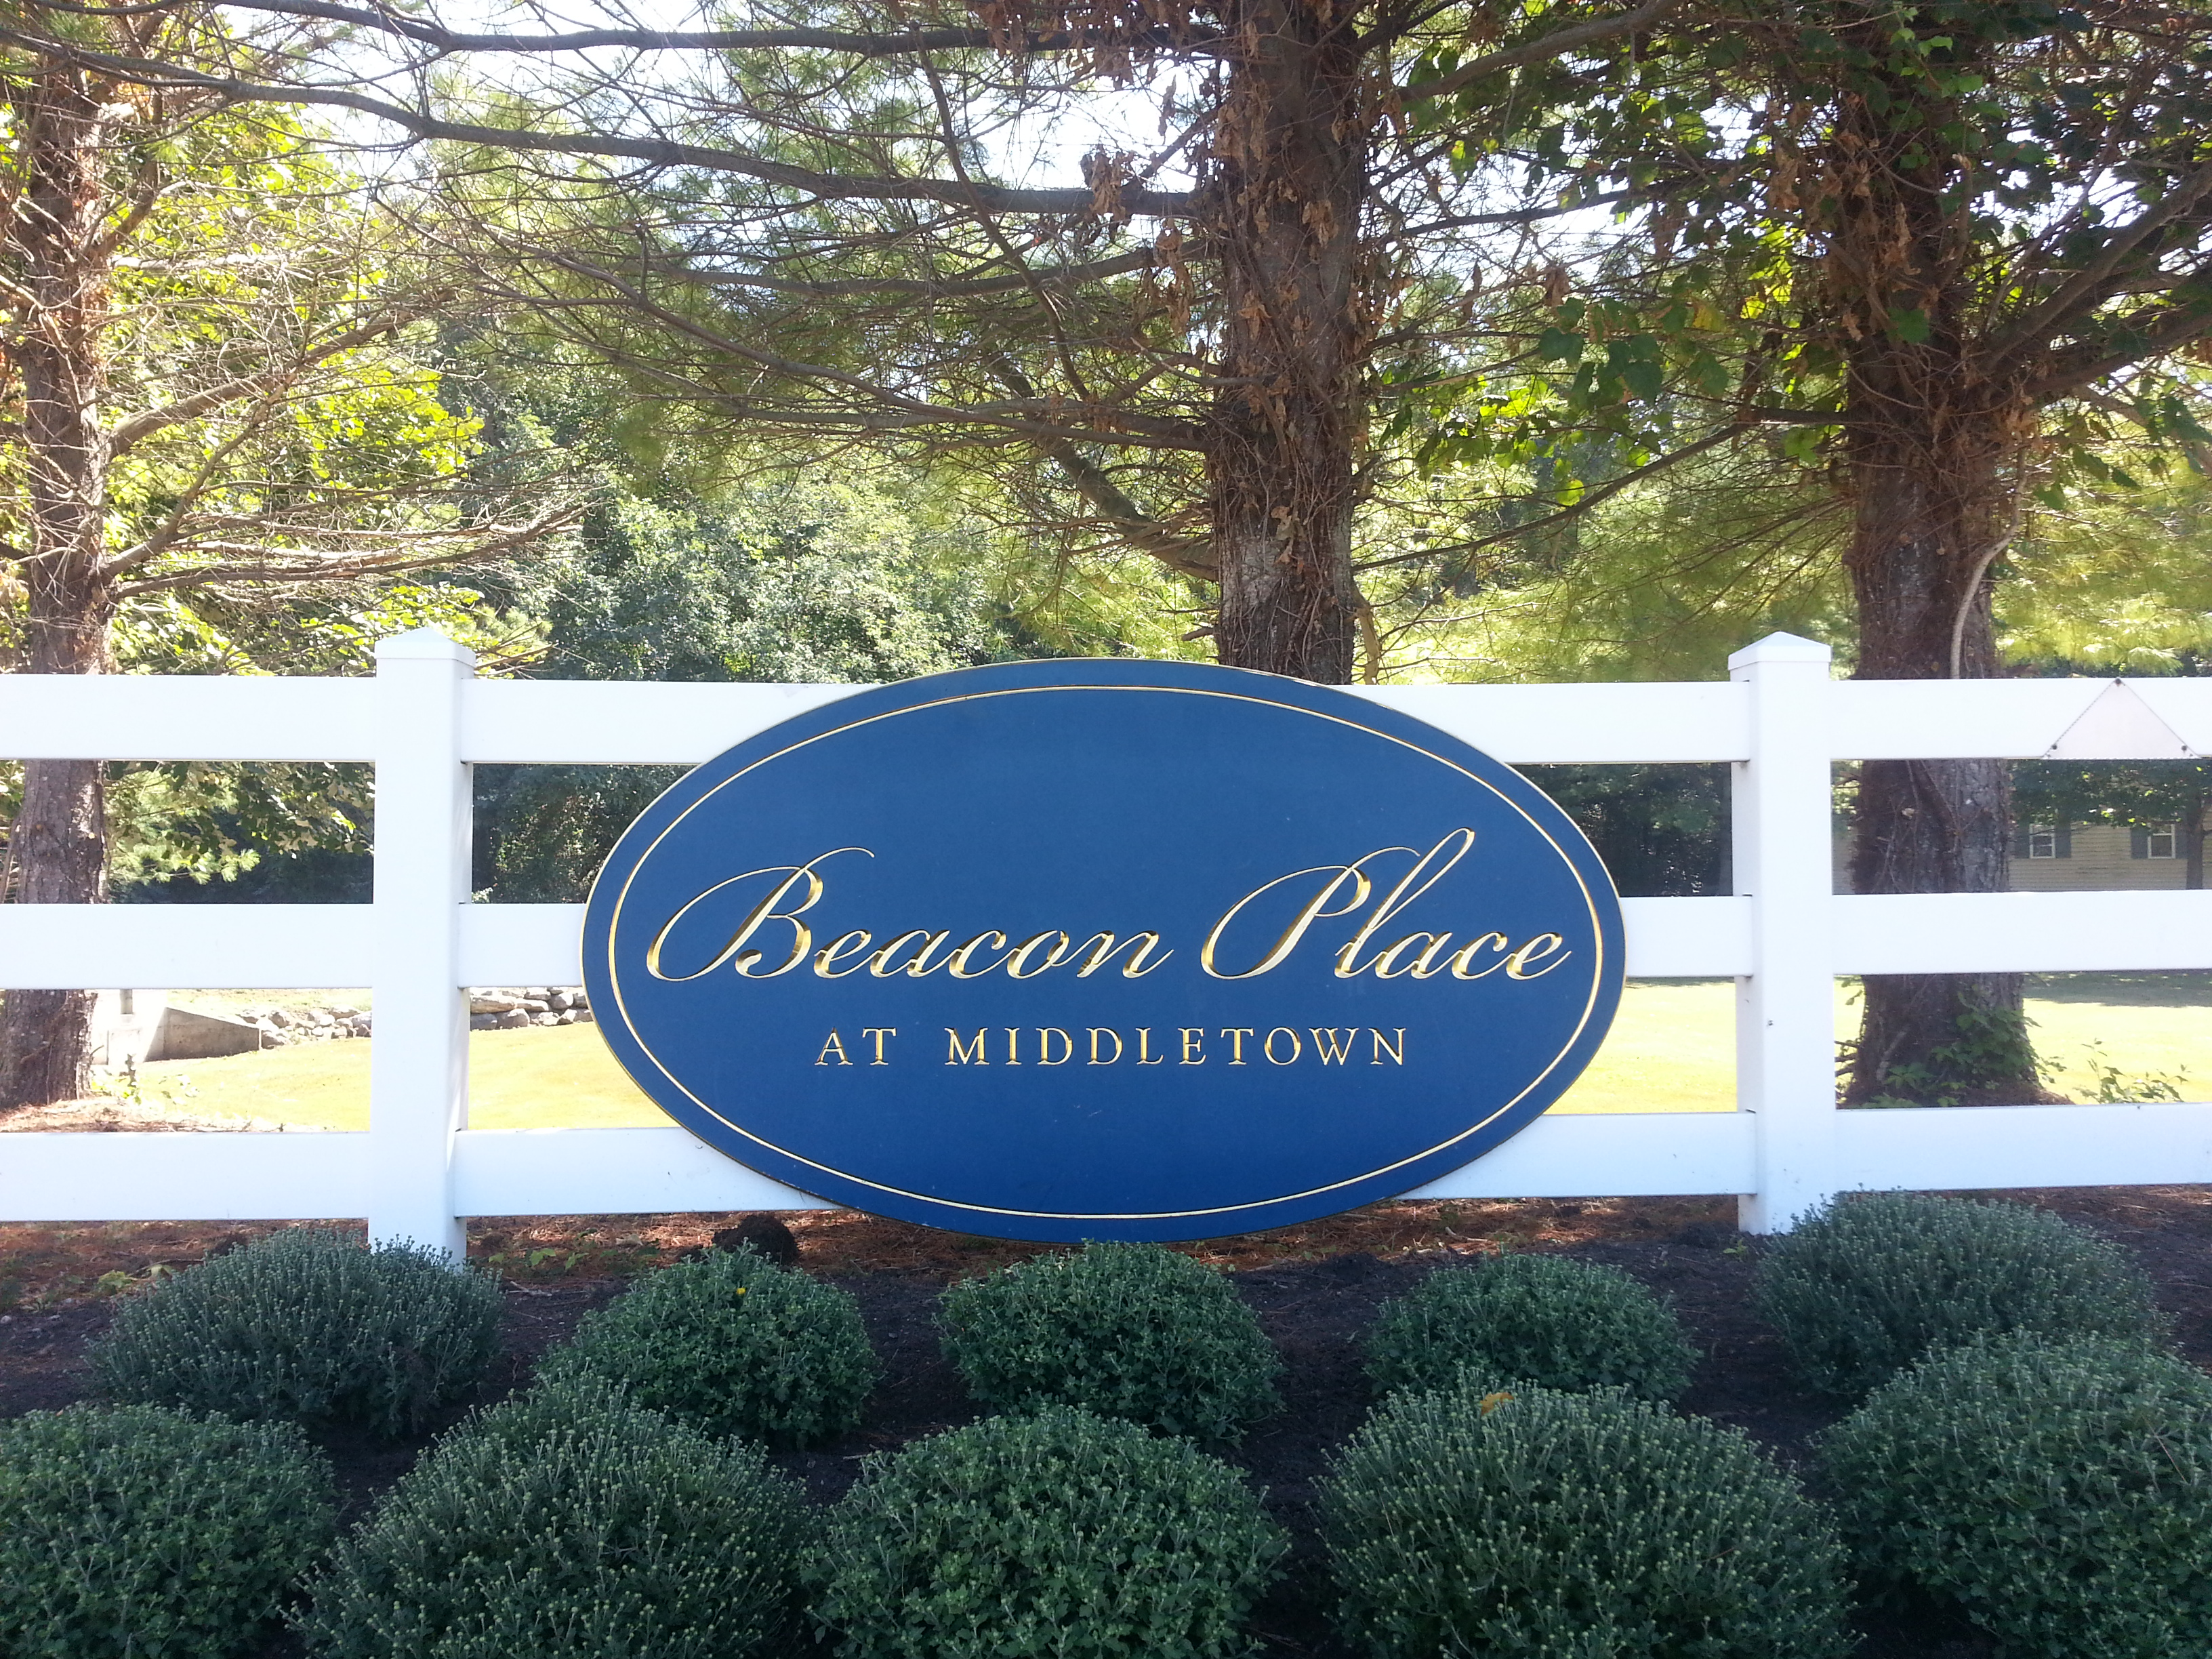 Beacon Place is located on Wedgewood Circle, right off of Rte. 36 in Belford.